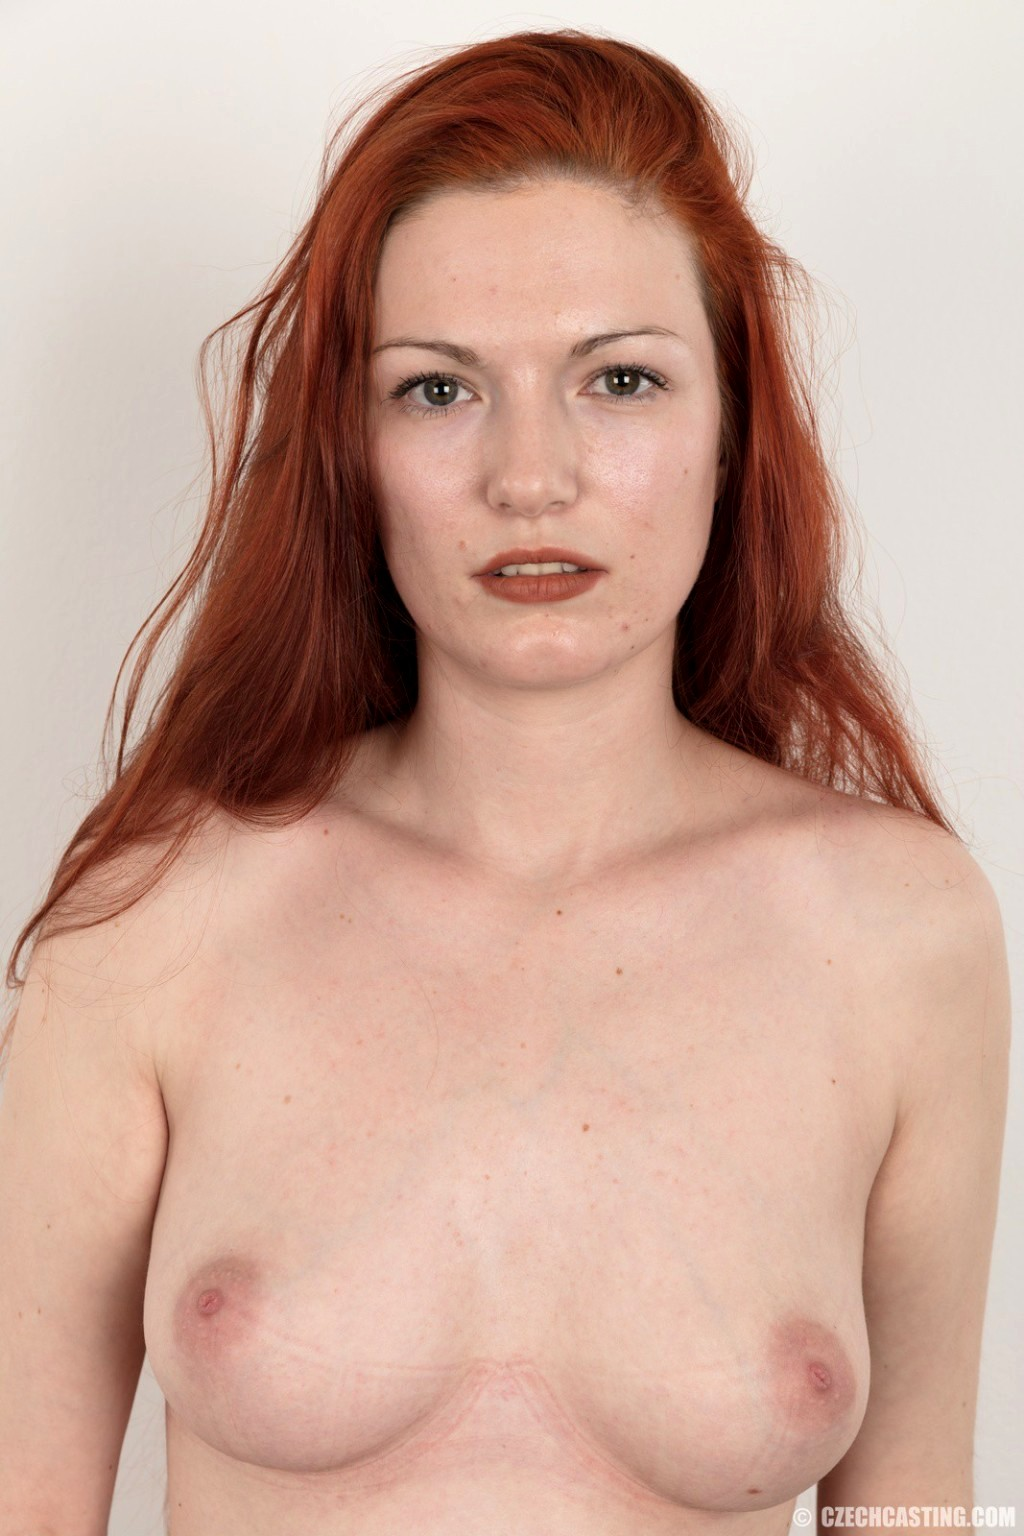 Babe Today Czech Casting Czechcasting Model Top Suggested -6397